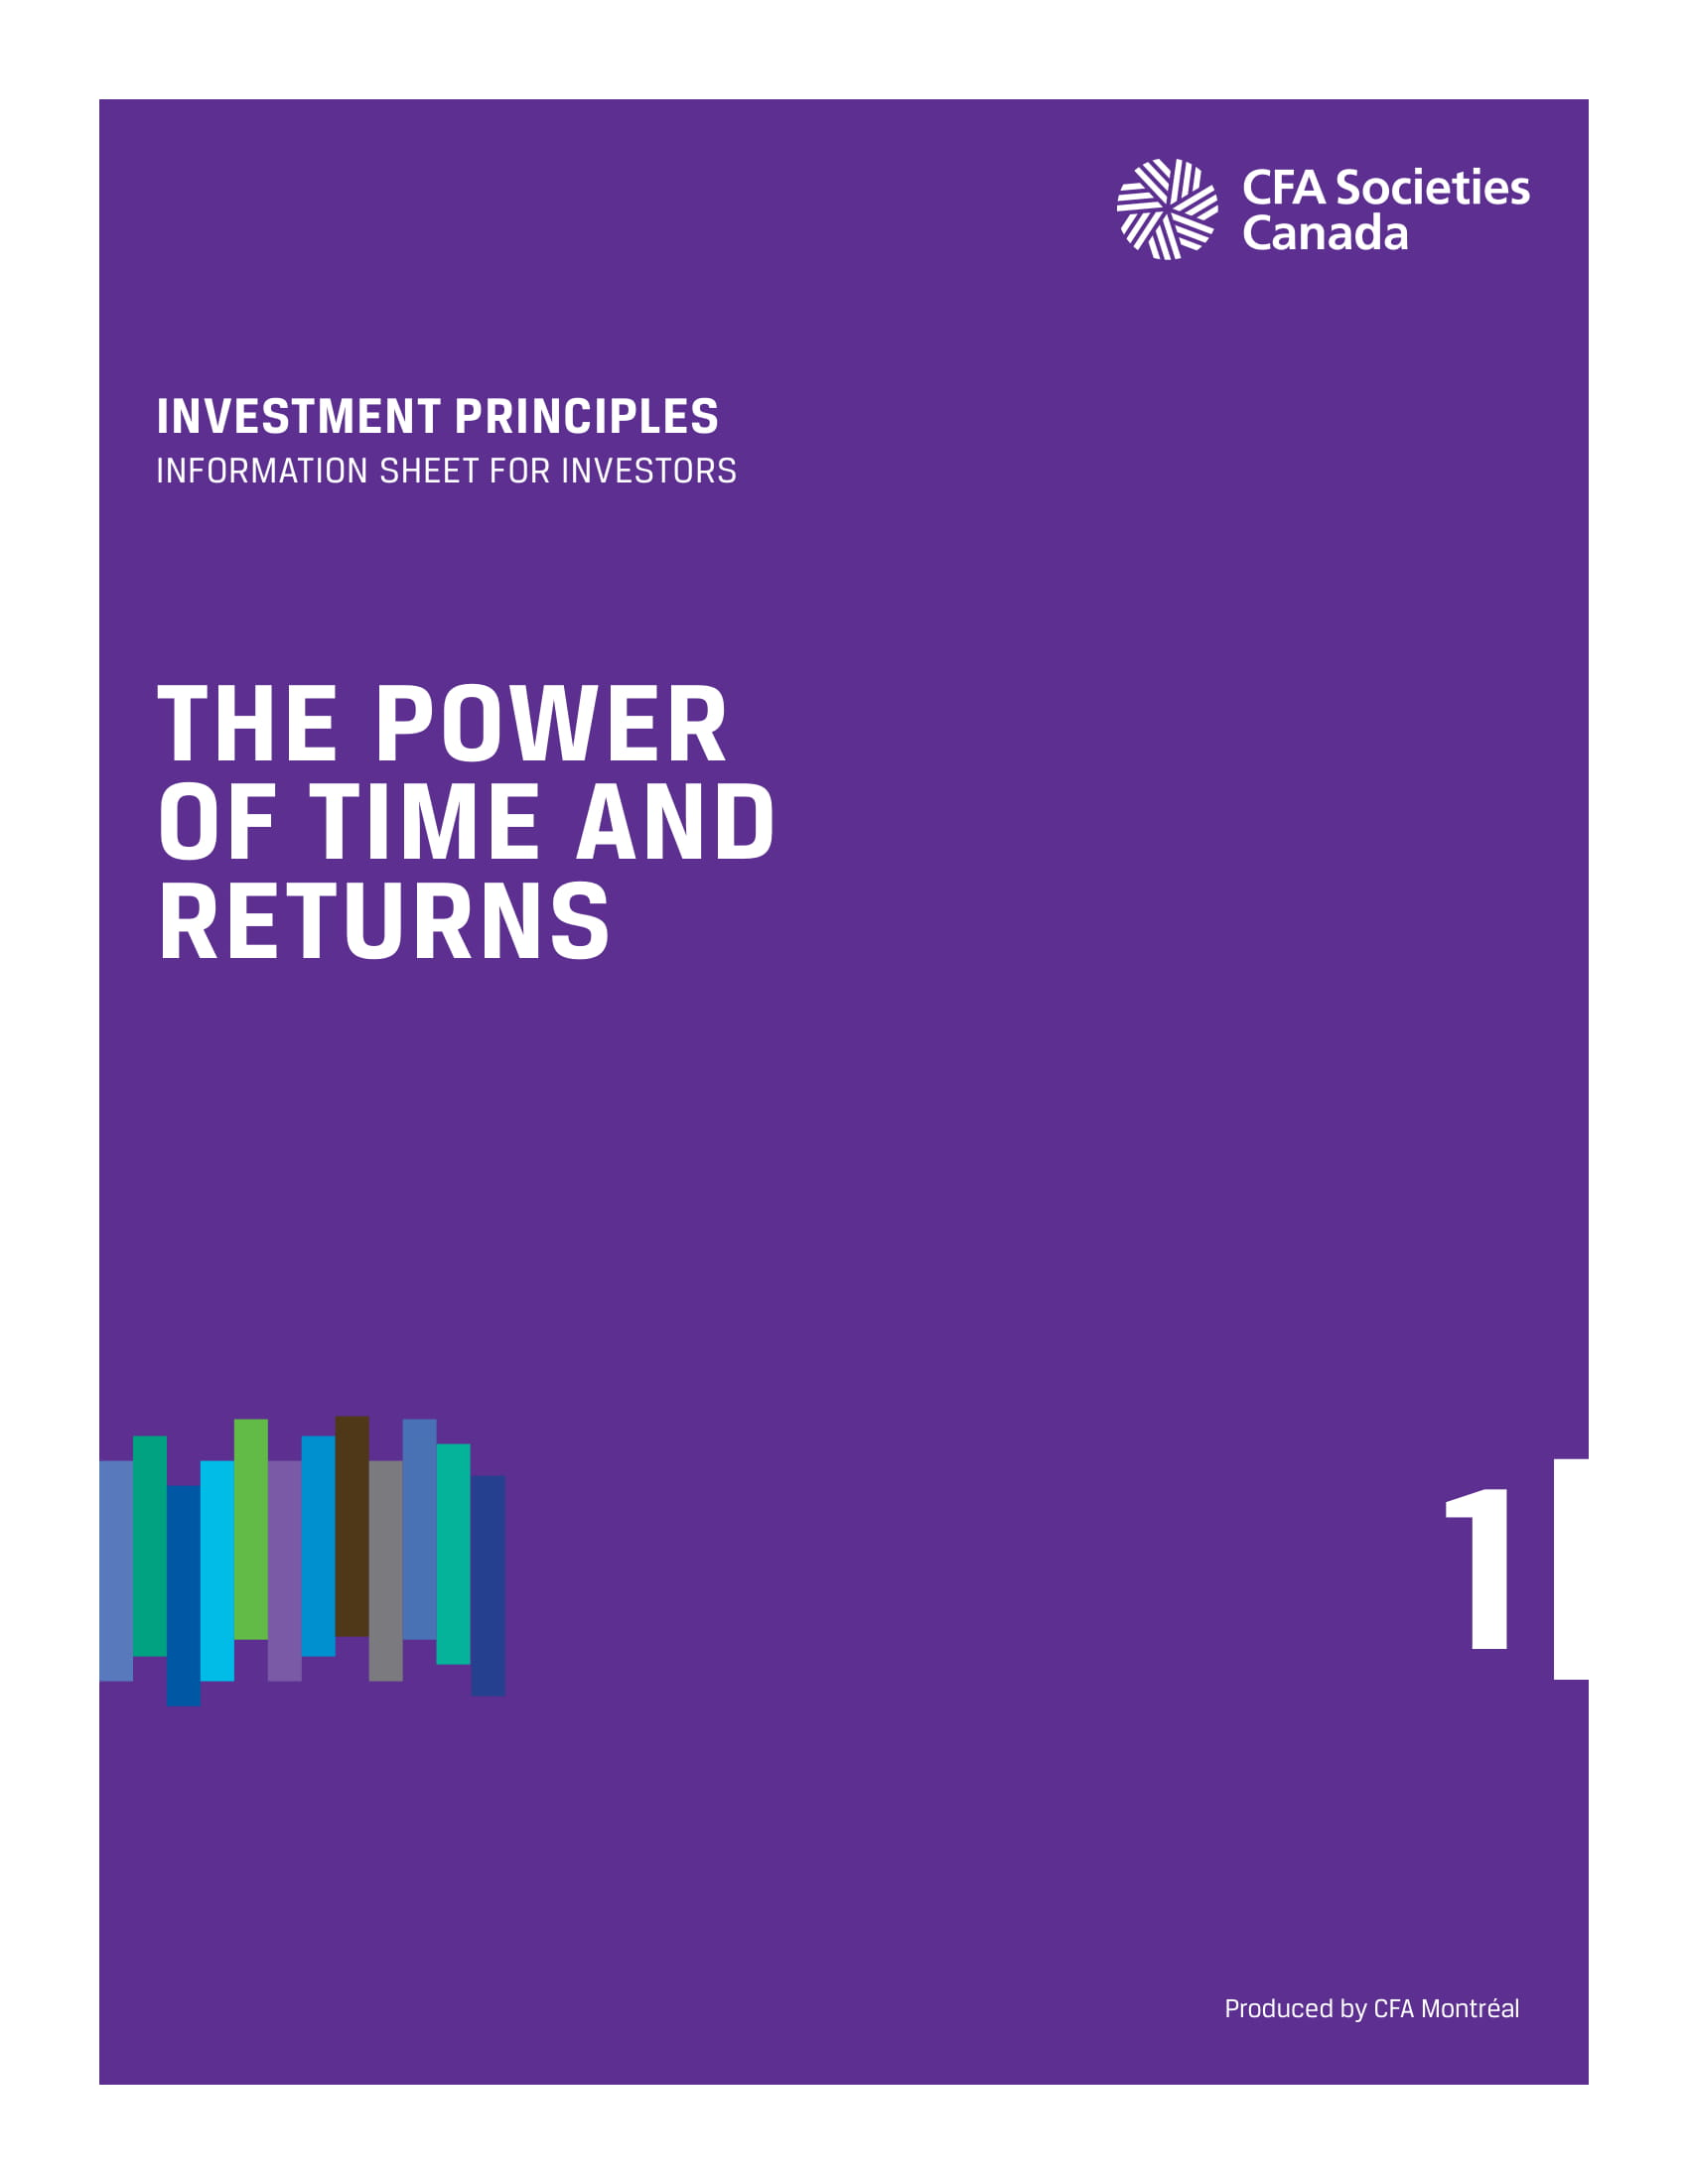 1. Investors - The Power of Time and Returns_p1-1-1.jpg